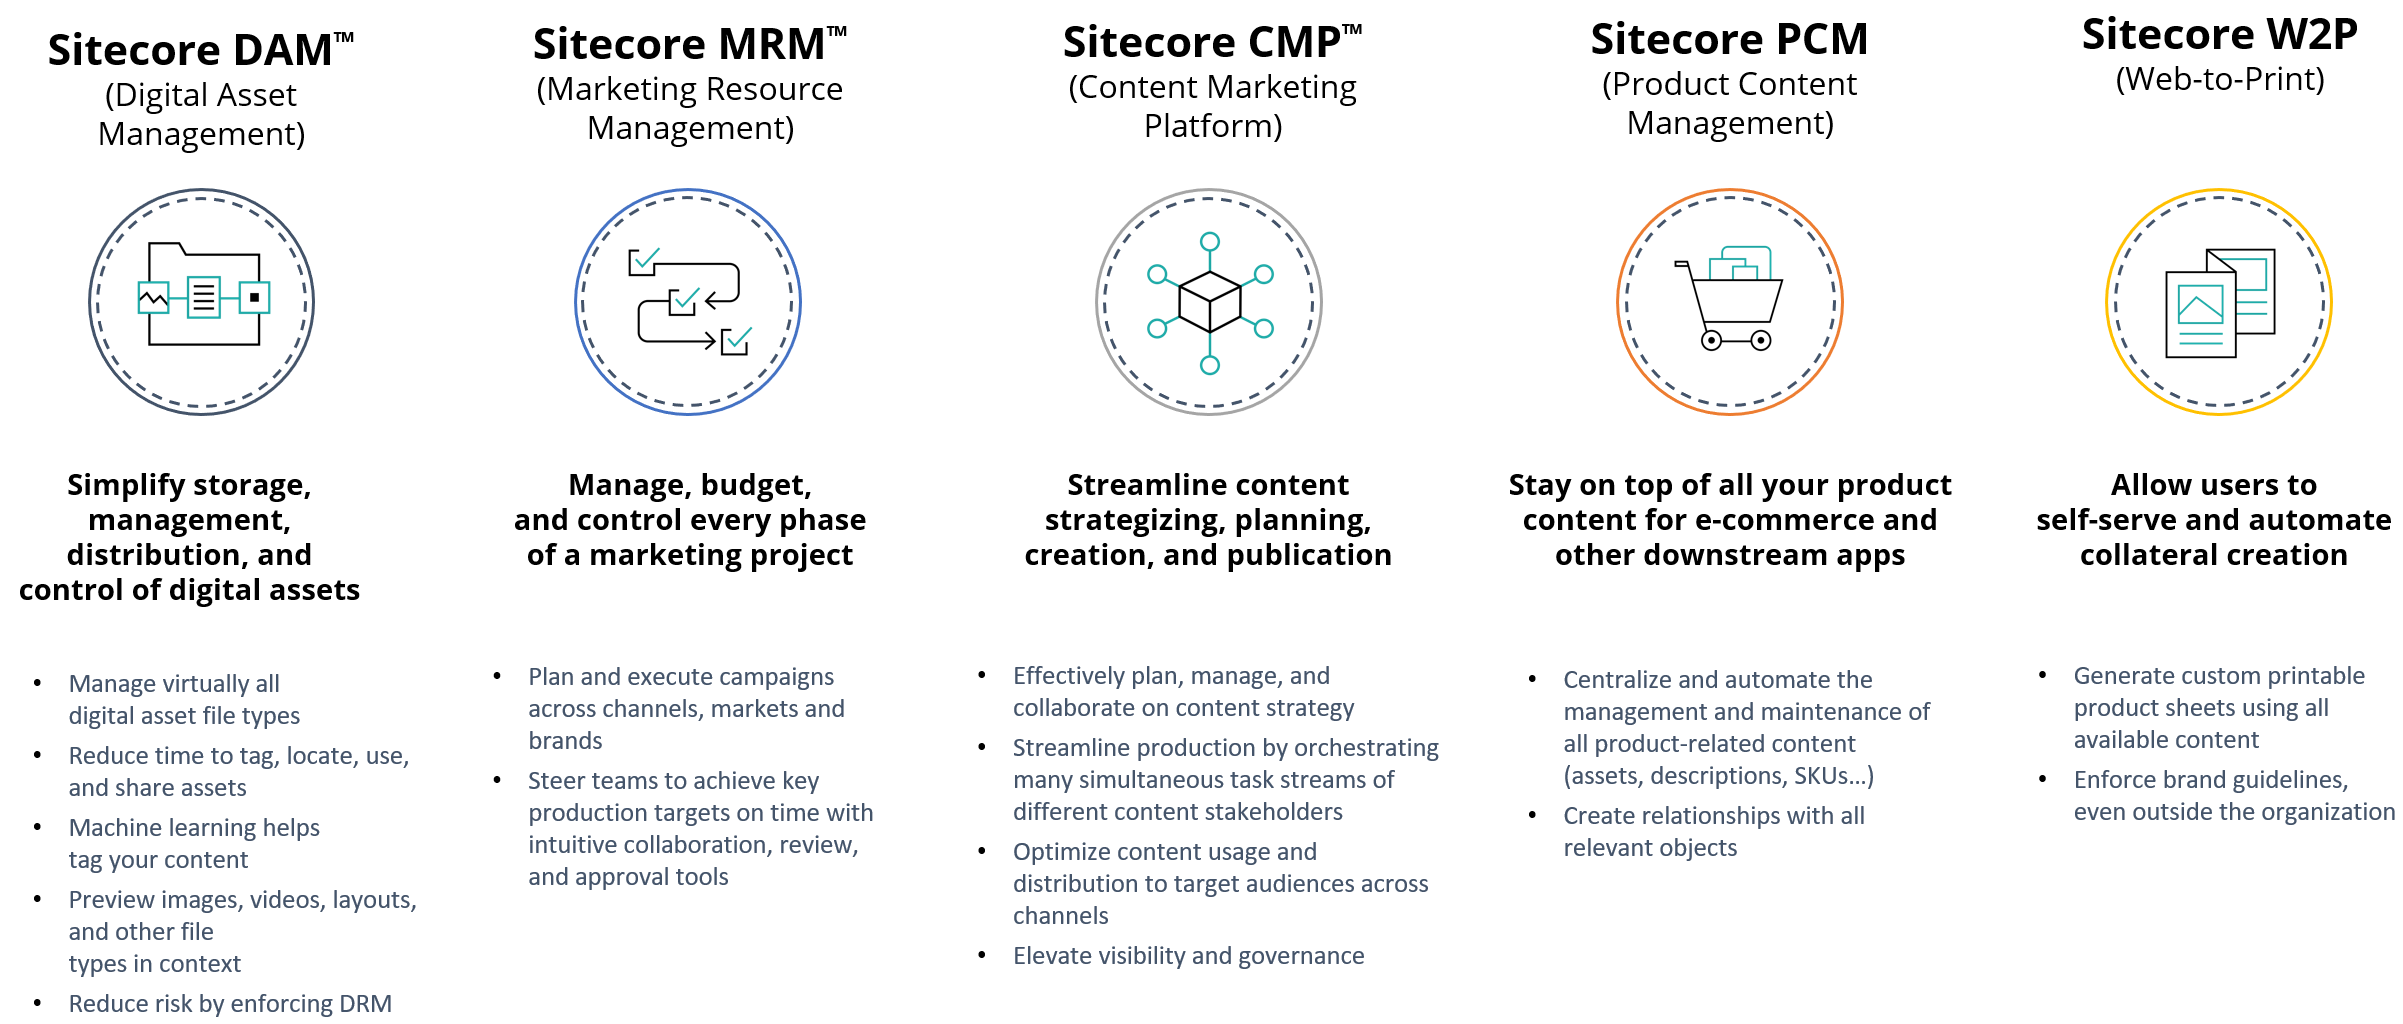 Digital Asset Management (DAM), Product Content Management (PCM), Content Marketing Platform (CMP), Marketing Resource Management (MRM), Web to Print (W2P)